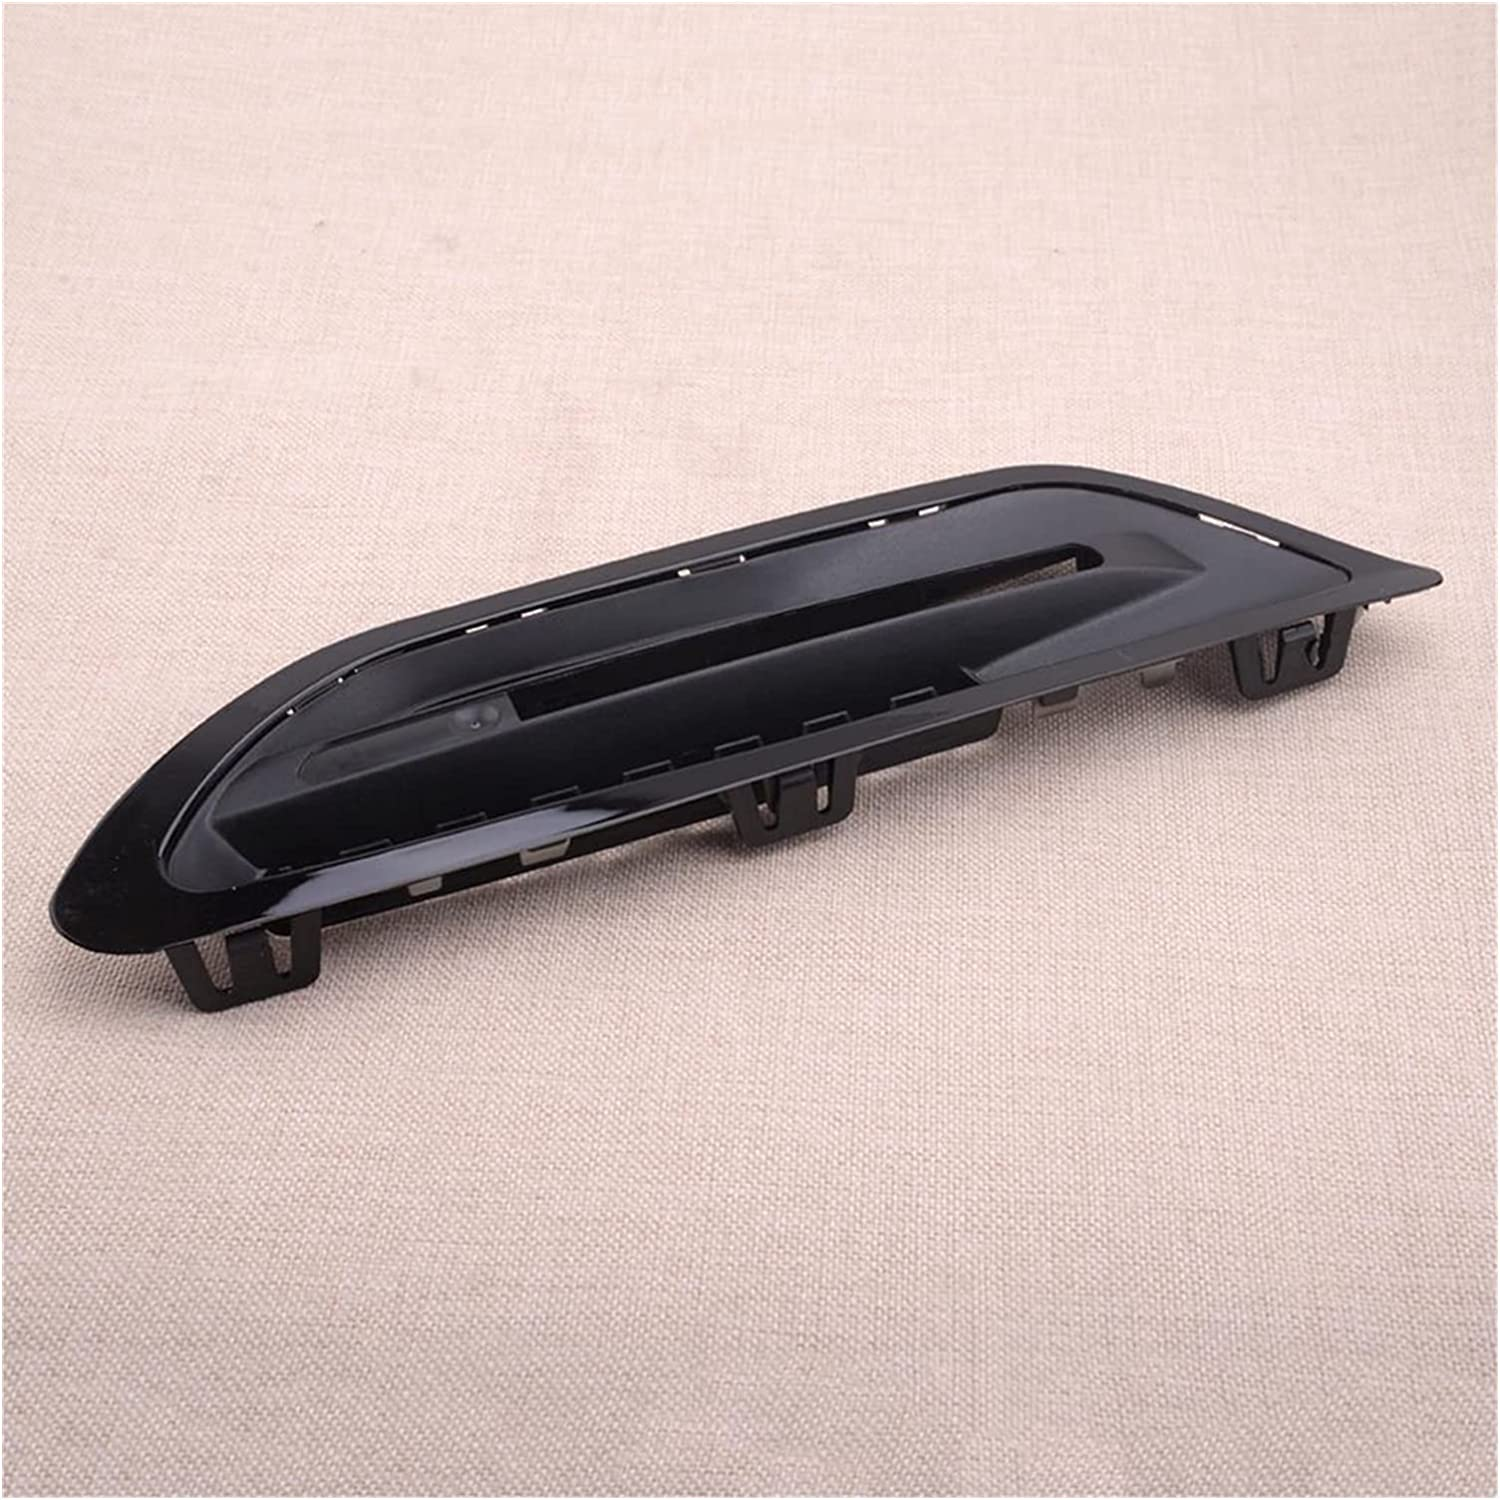 CHUANFENG 1 Pair Car Side Department store Fender Cov Trim Indefinitely Vent Air Grille Outlet